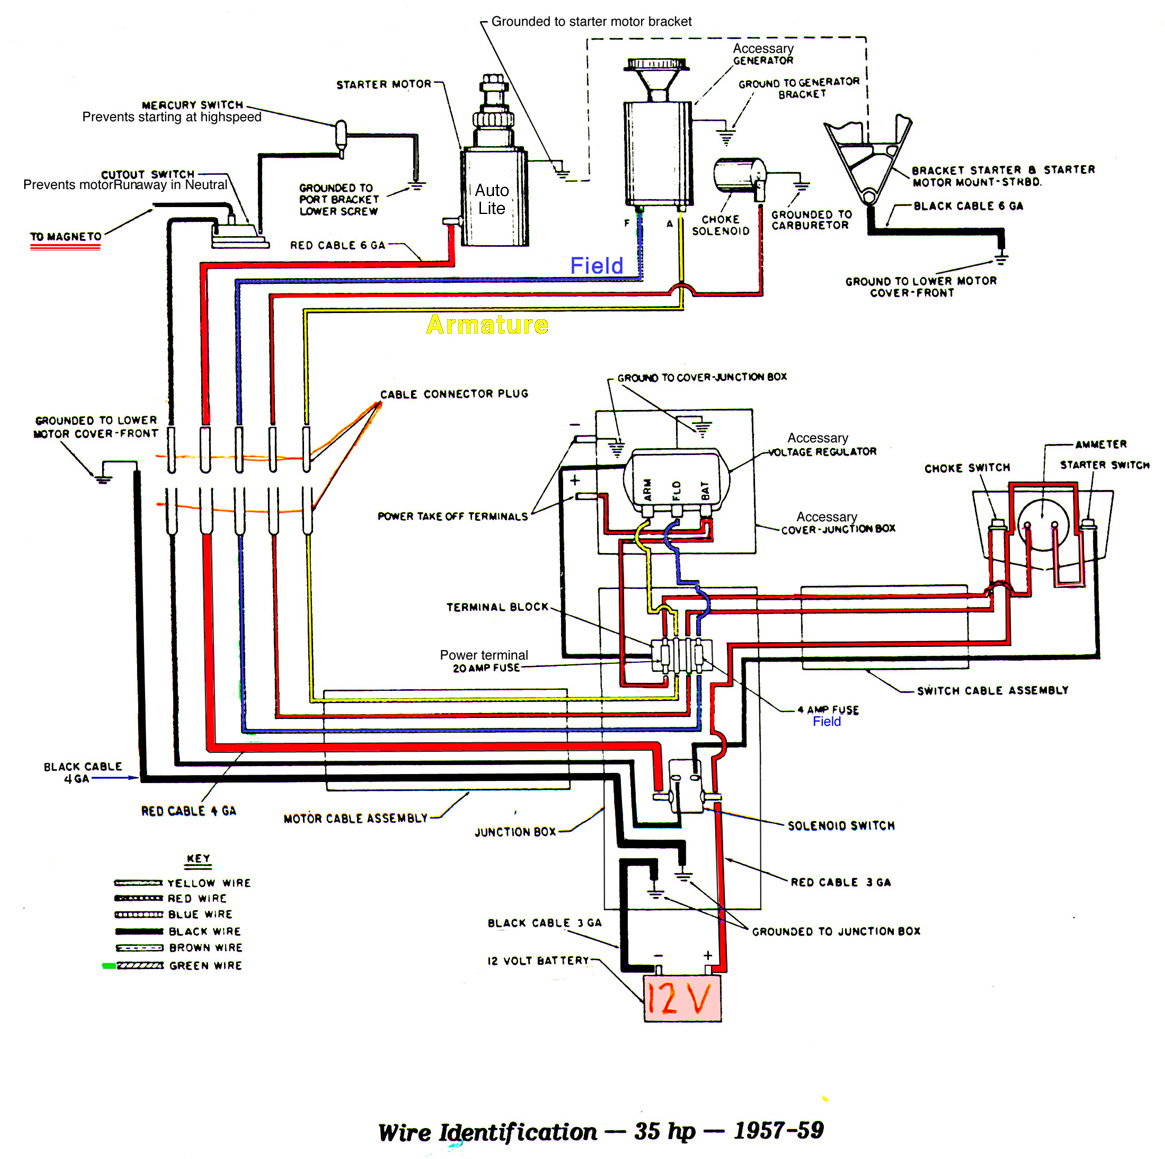 35 Hp Johnson Wiring Harness Diagram Diy Enthusiasts Diagrams Motor 1958 Super Seahorse Aomci Blue Board Rh Org Outboard Year Boat